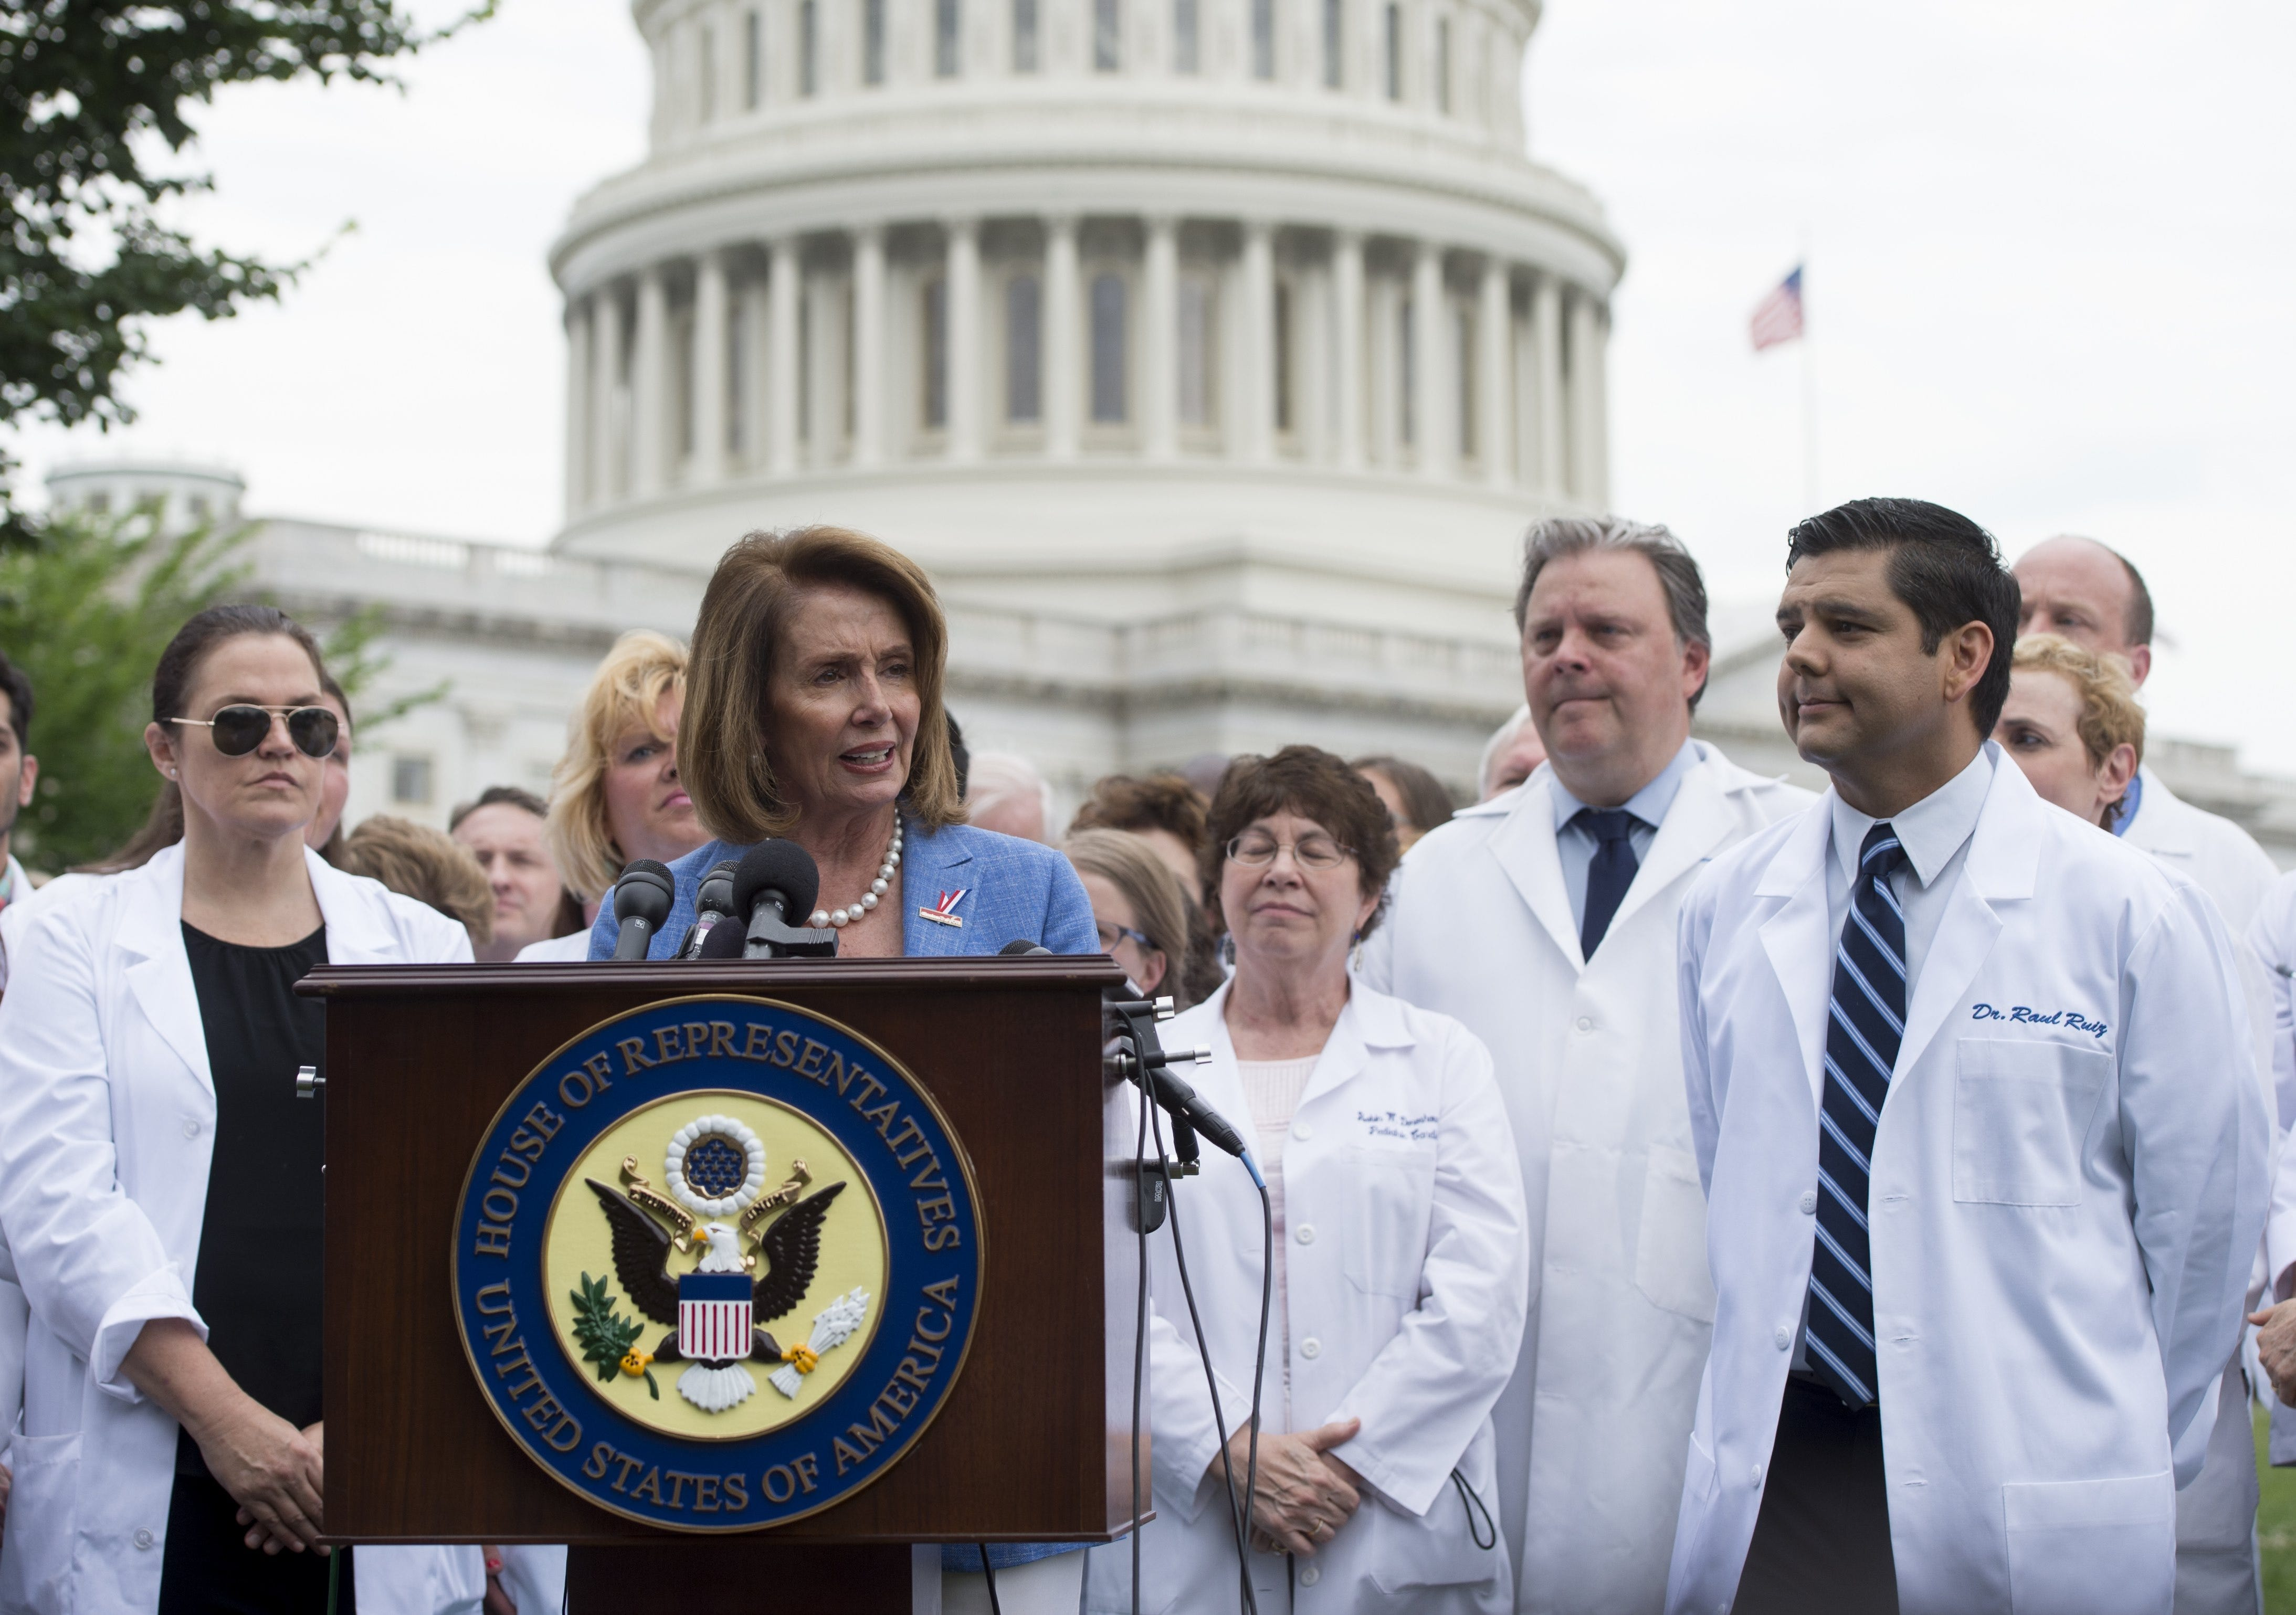 Http Www Usatoday Com Picture Gallery News Politics 2018 04 09